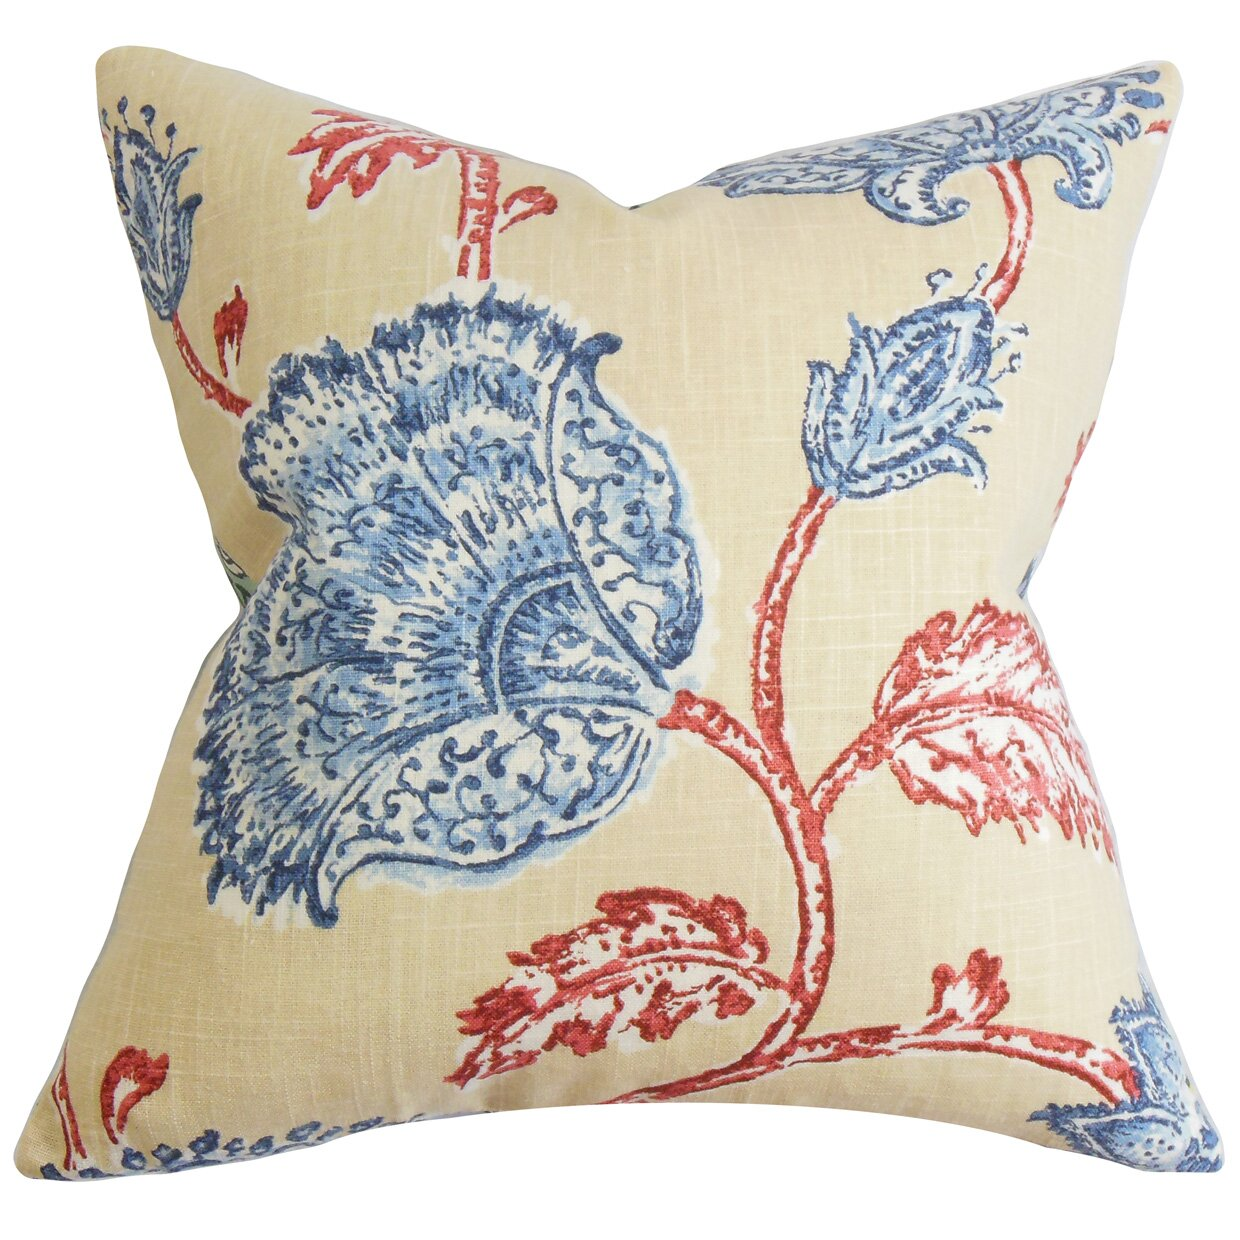 Wayfair Decorative Pillow Covers : The Pillow Collection Parthenia Floral Throw Pillow Cover Wayfair